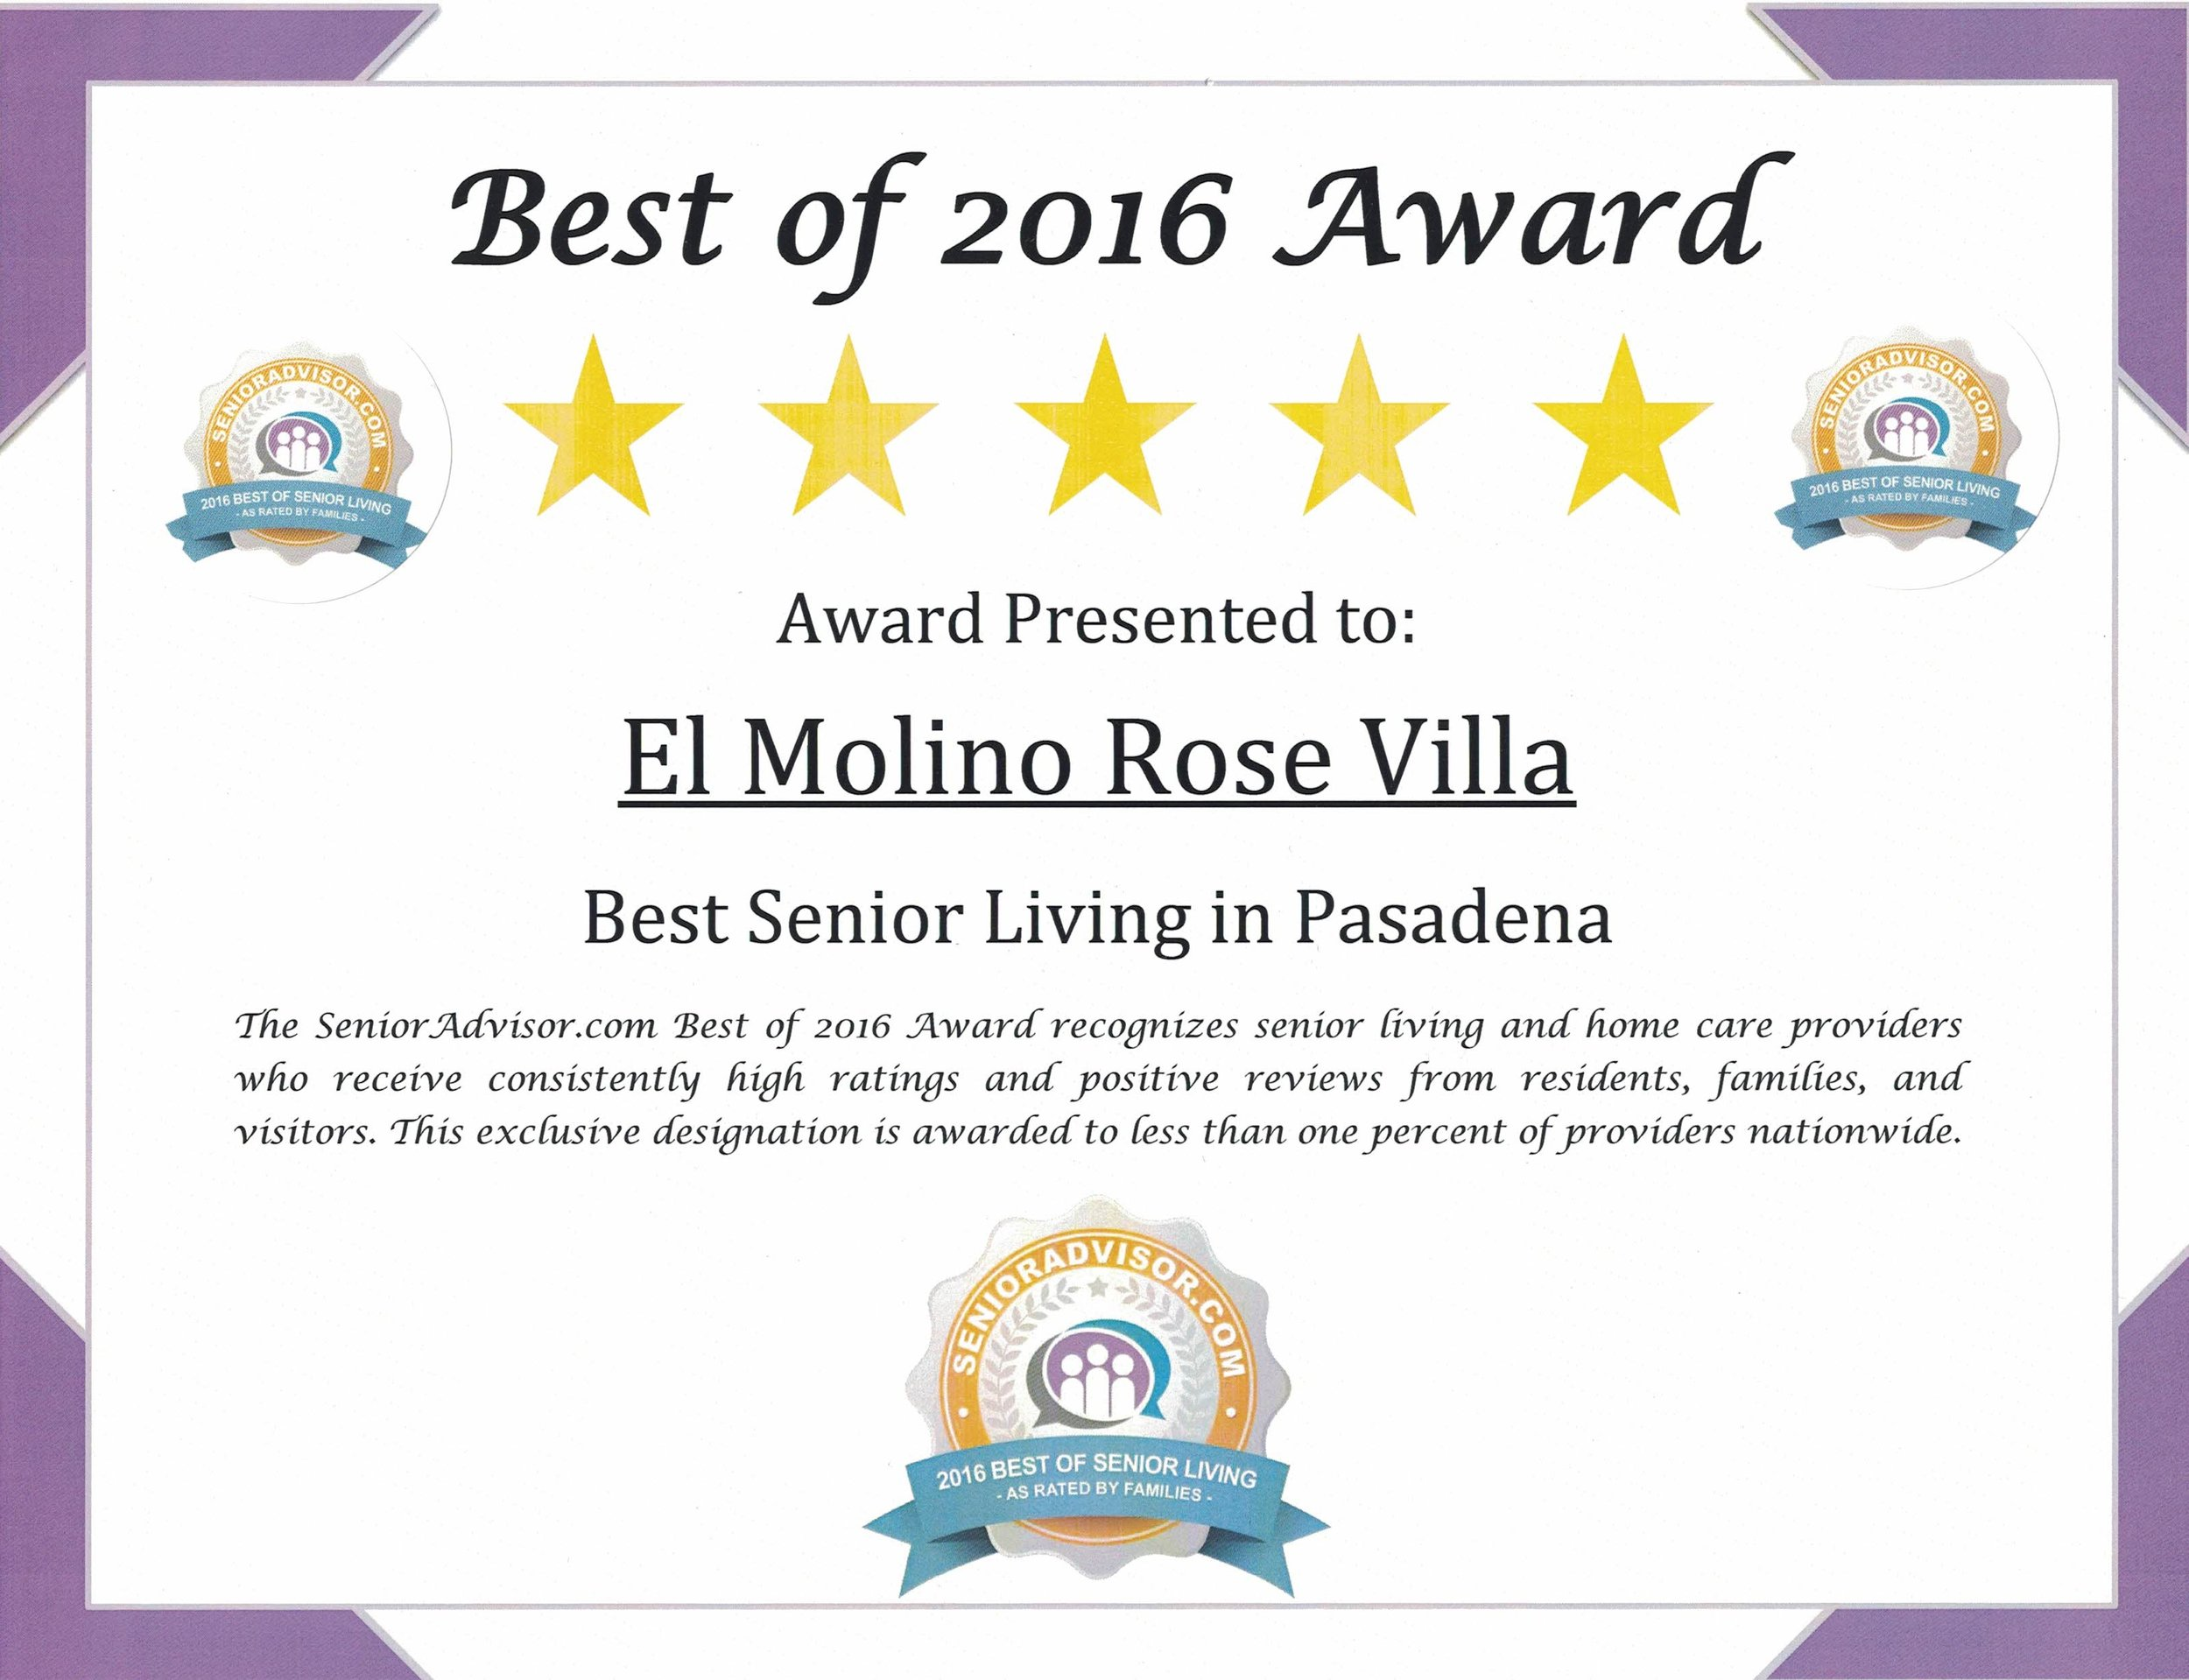 Best of Senior Living Award 2016.jpg